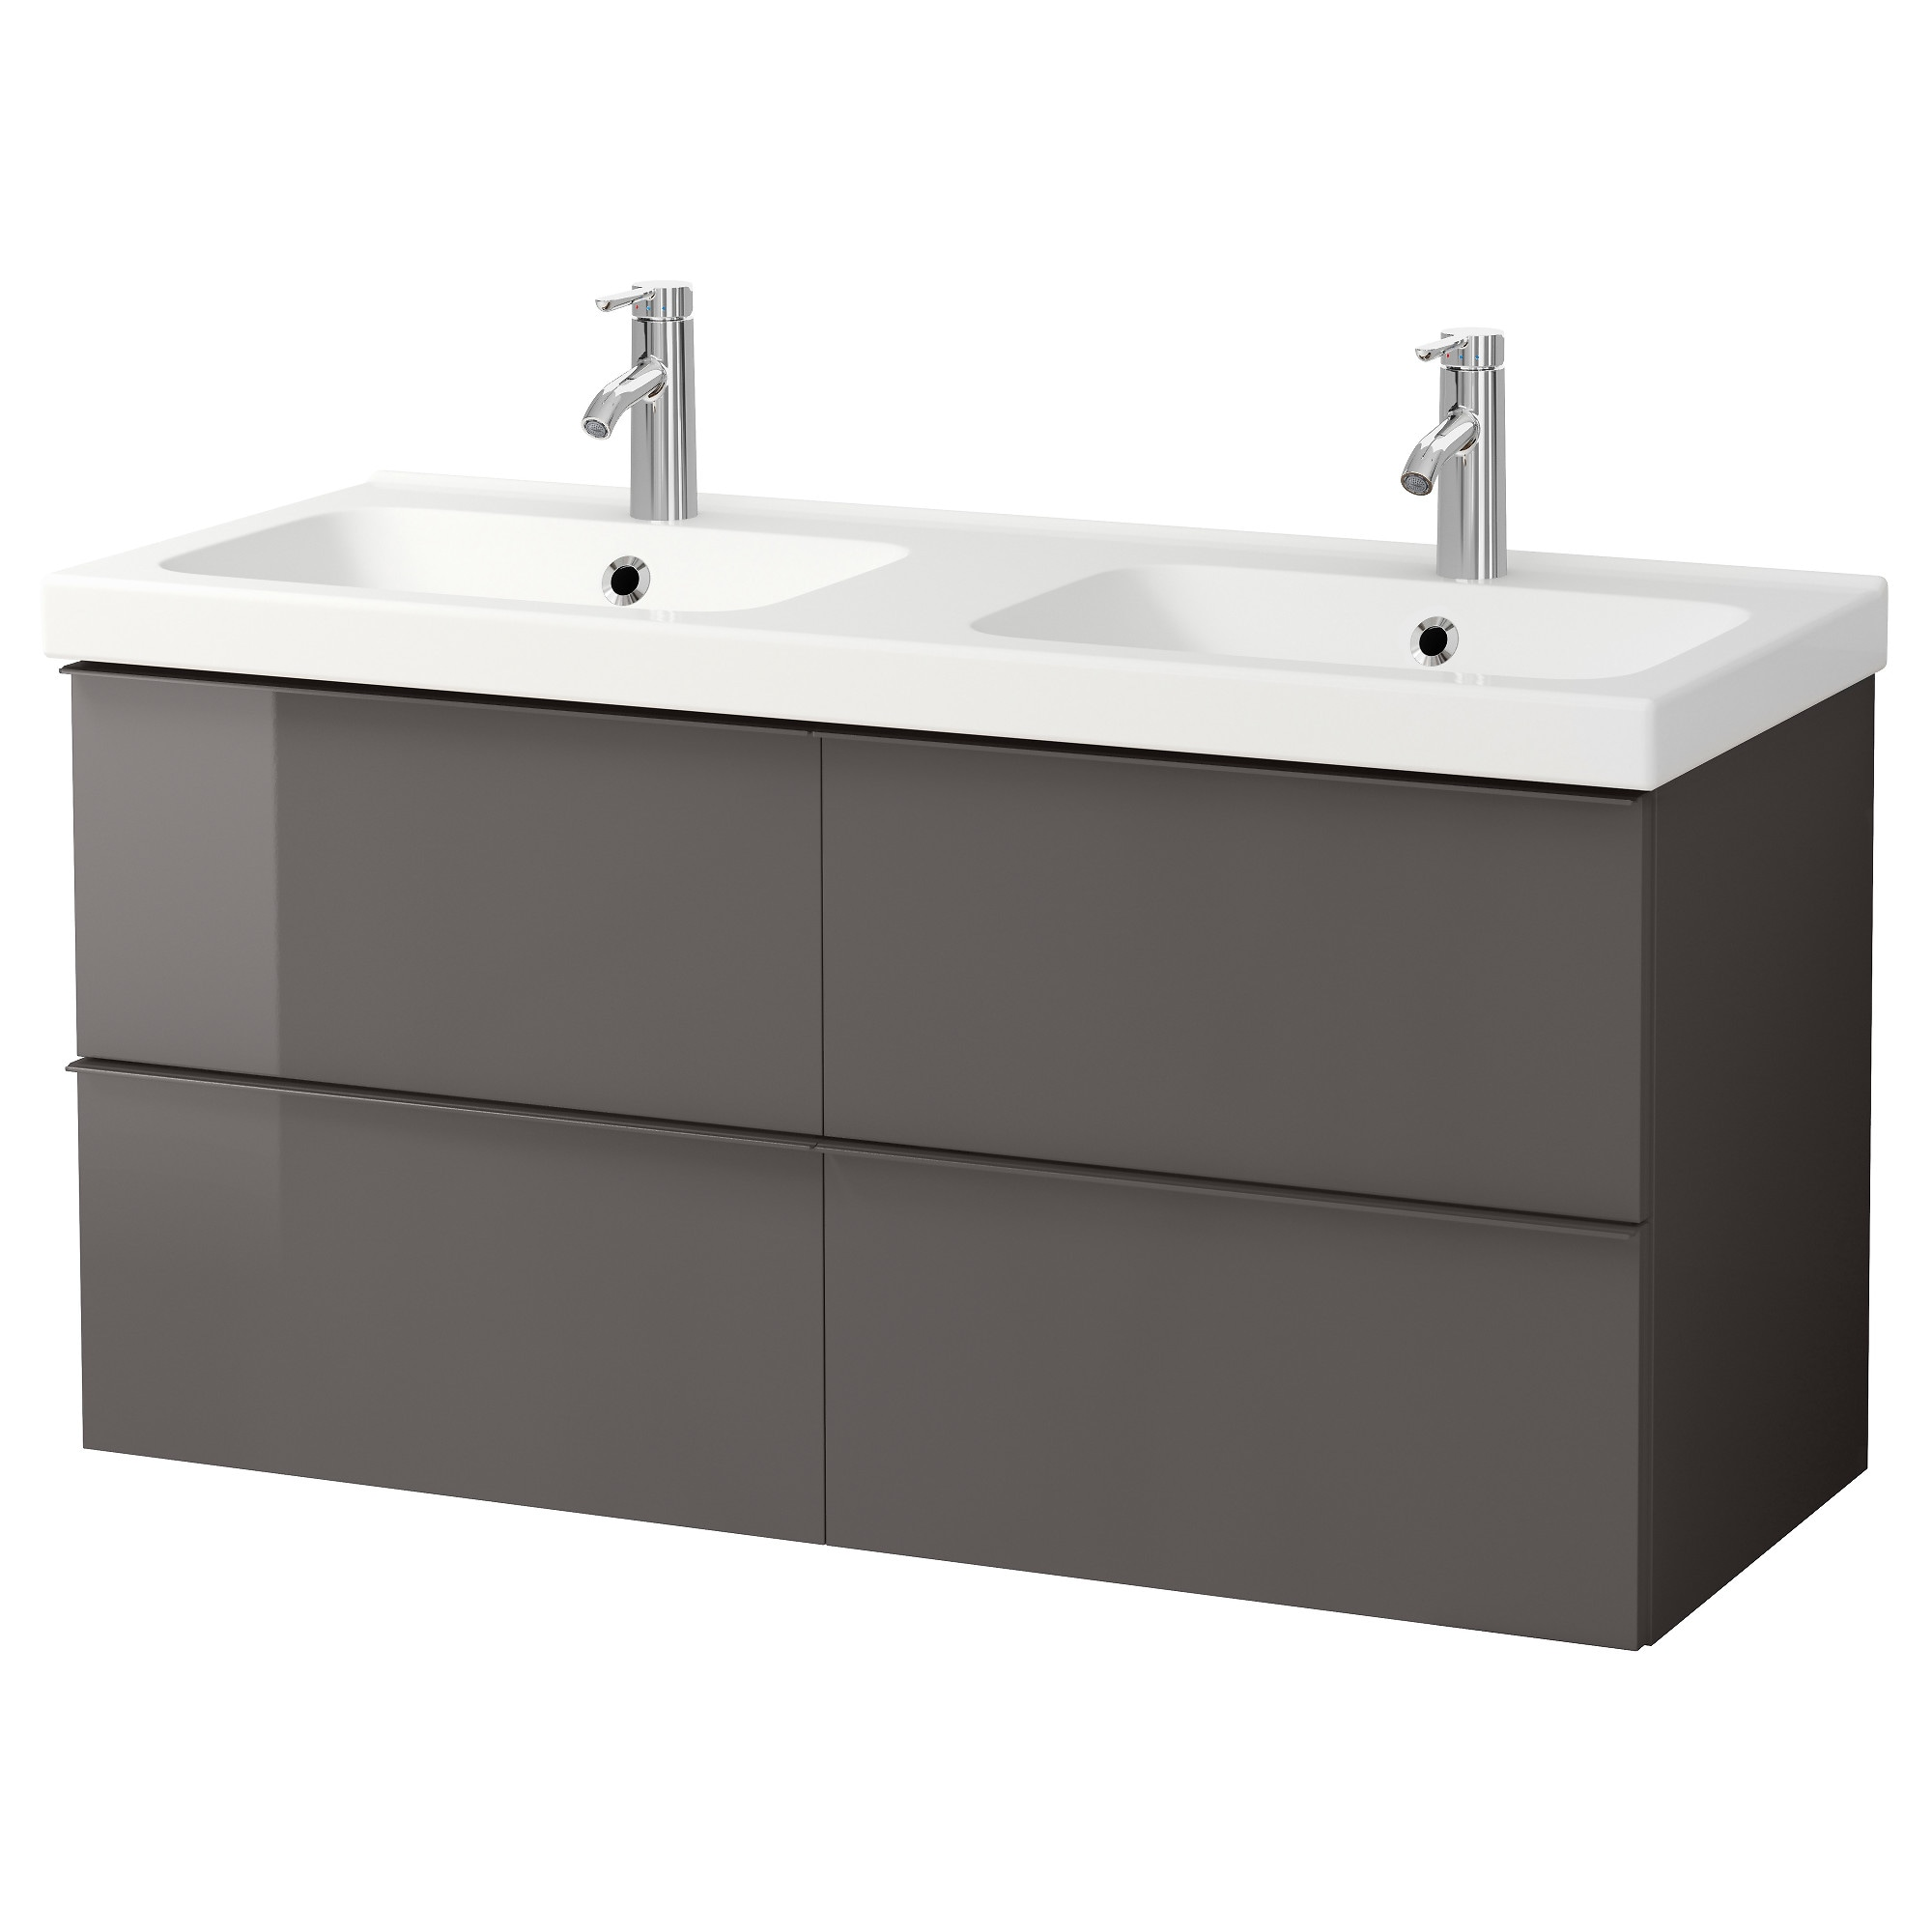 Bathroom Cabinets bathroom vanities & countertops - ikea